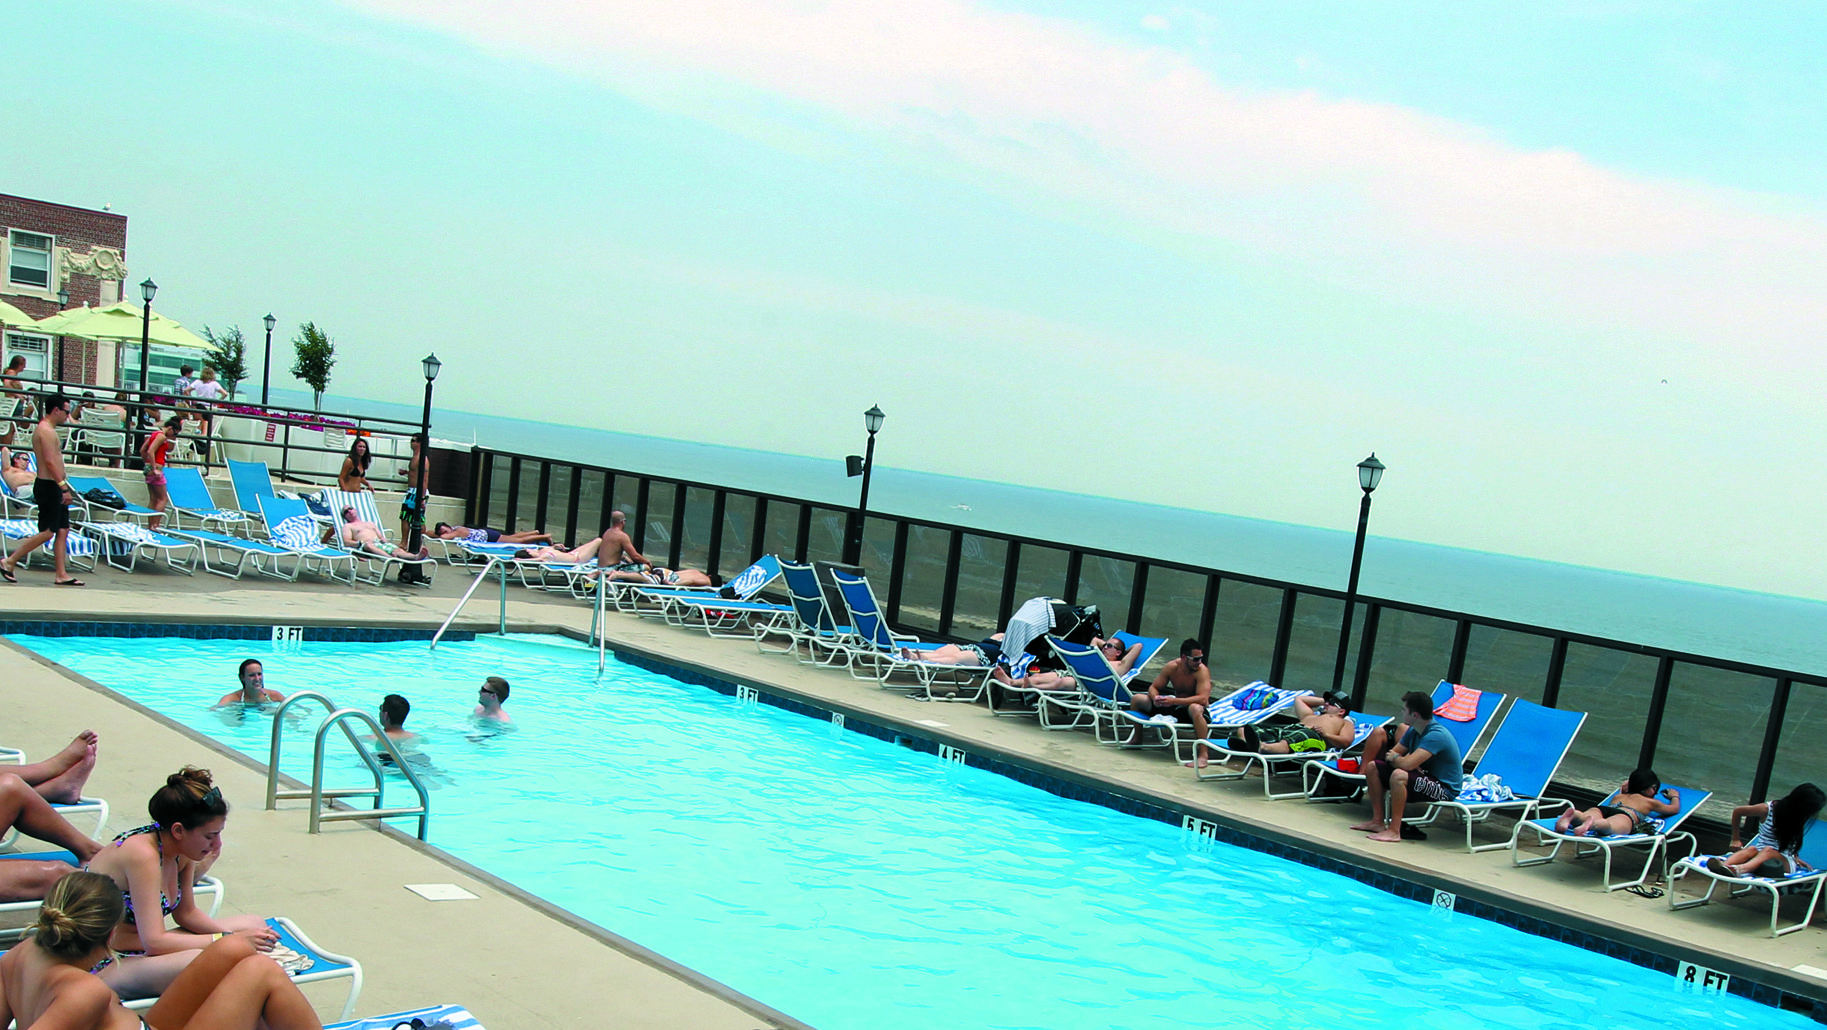 Outdoor Pool At Tropicana Atlantic City Atlantic City Vacation Family Vacation Packages Tropicana Hotel